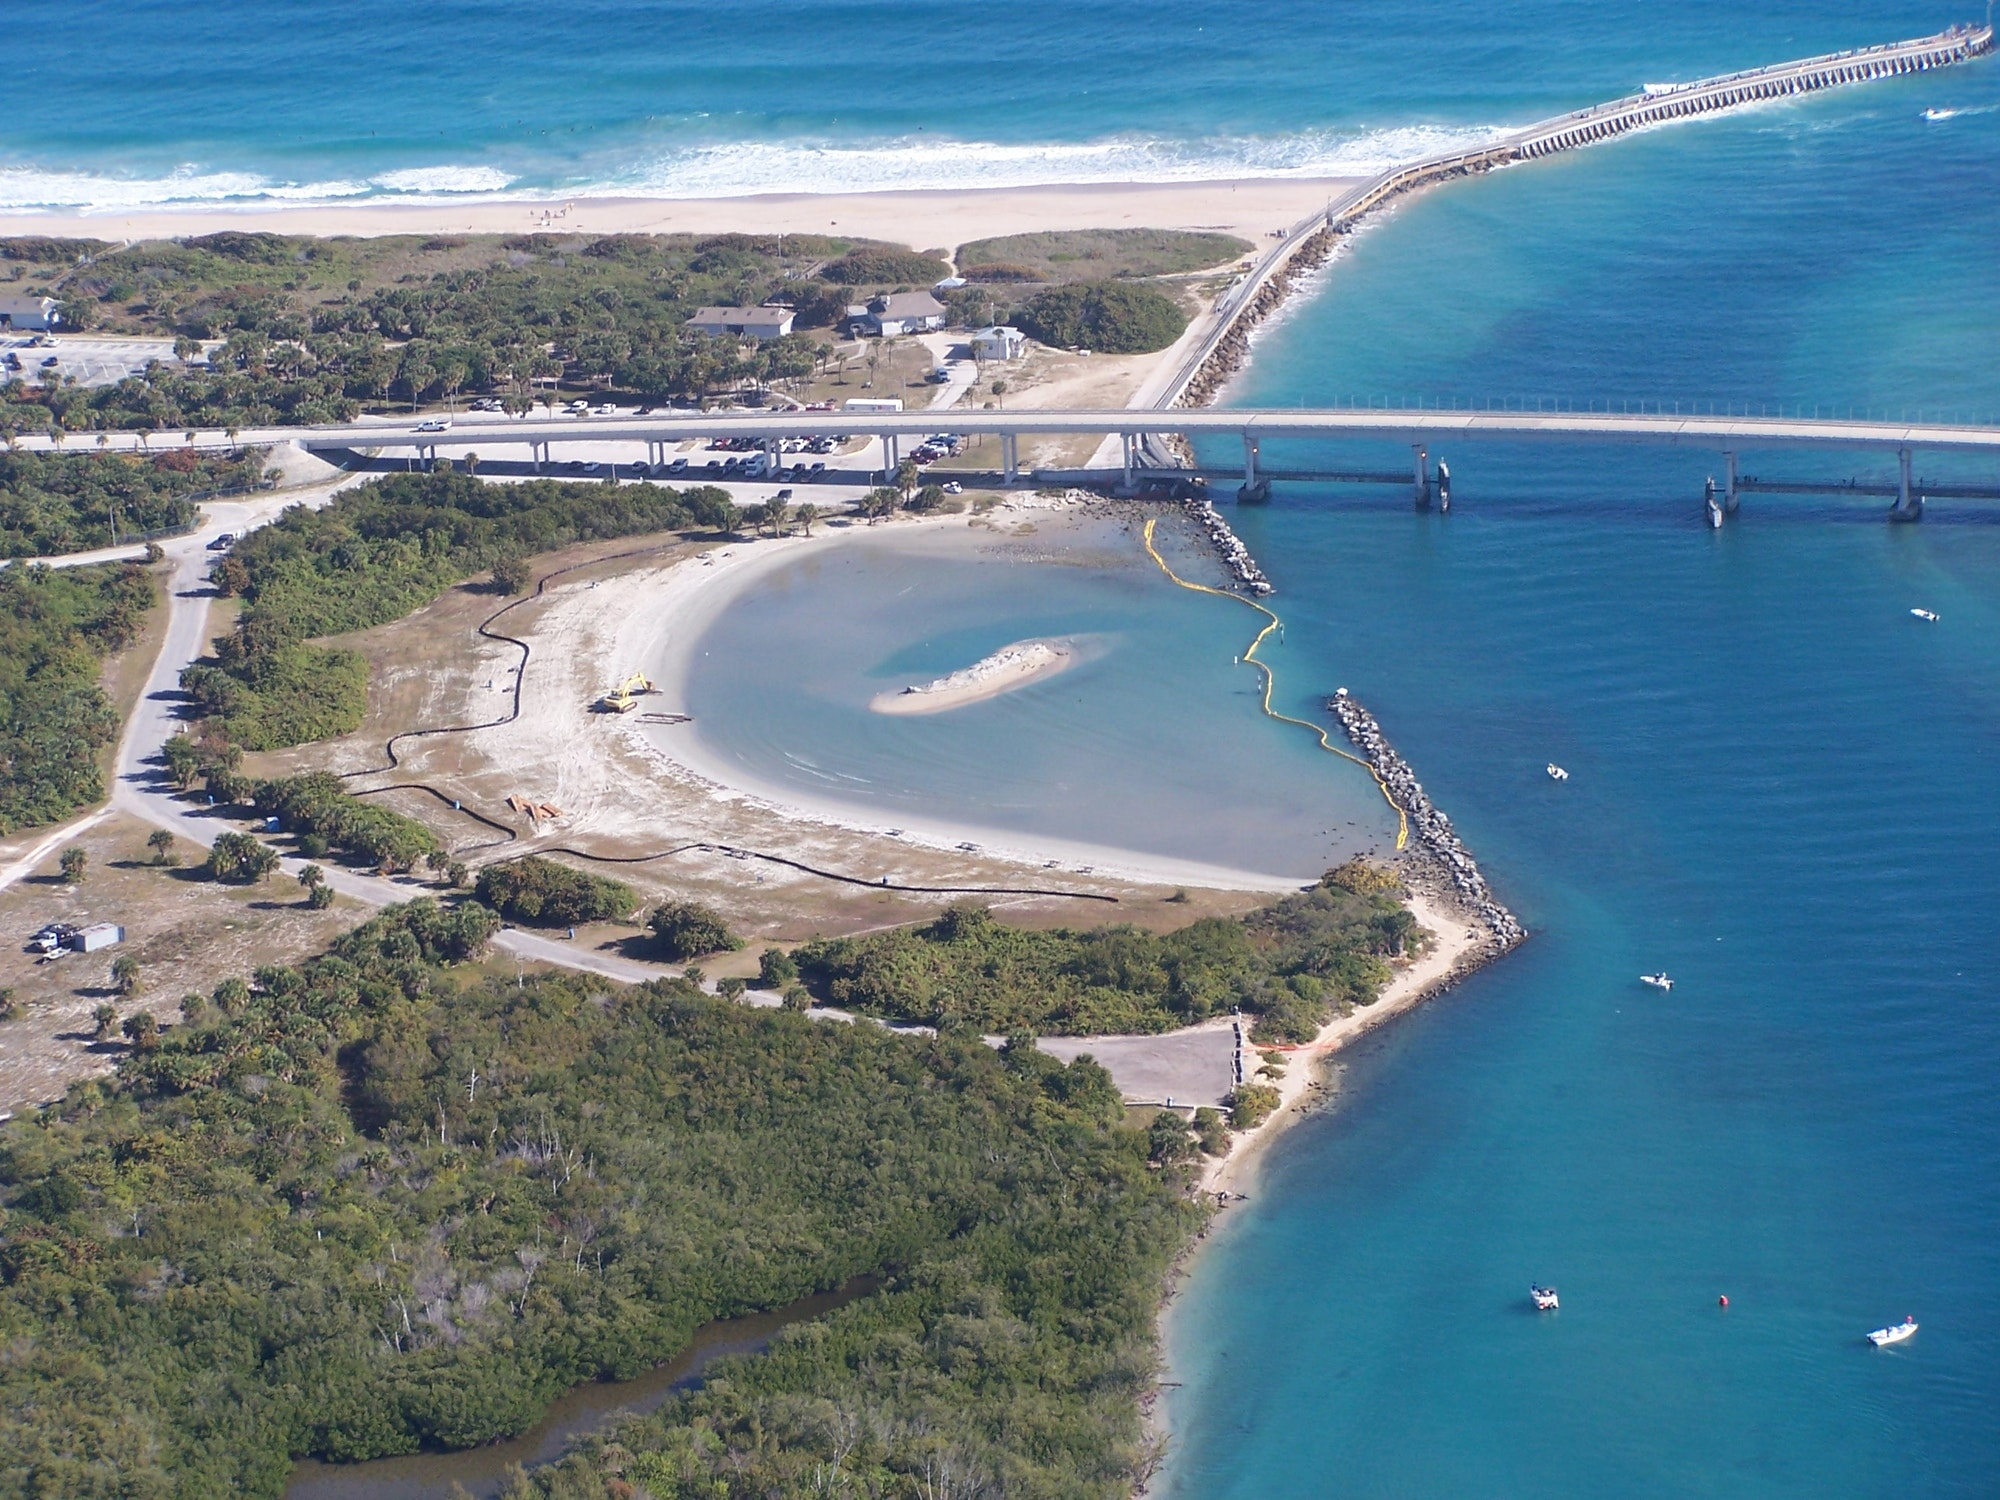 aerial view of tide pool at Sebastian Inlet looking East showing a portion of the channel on the right